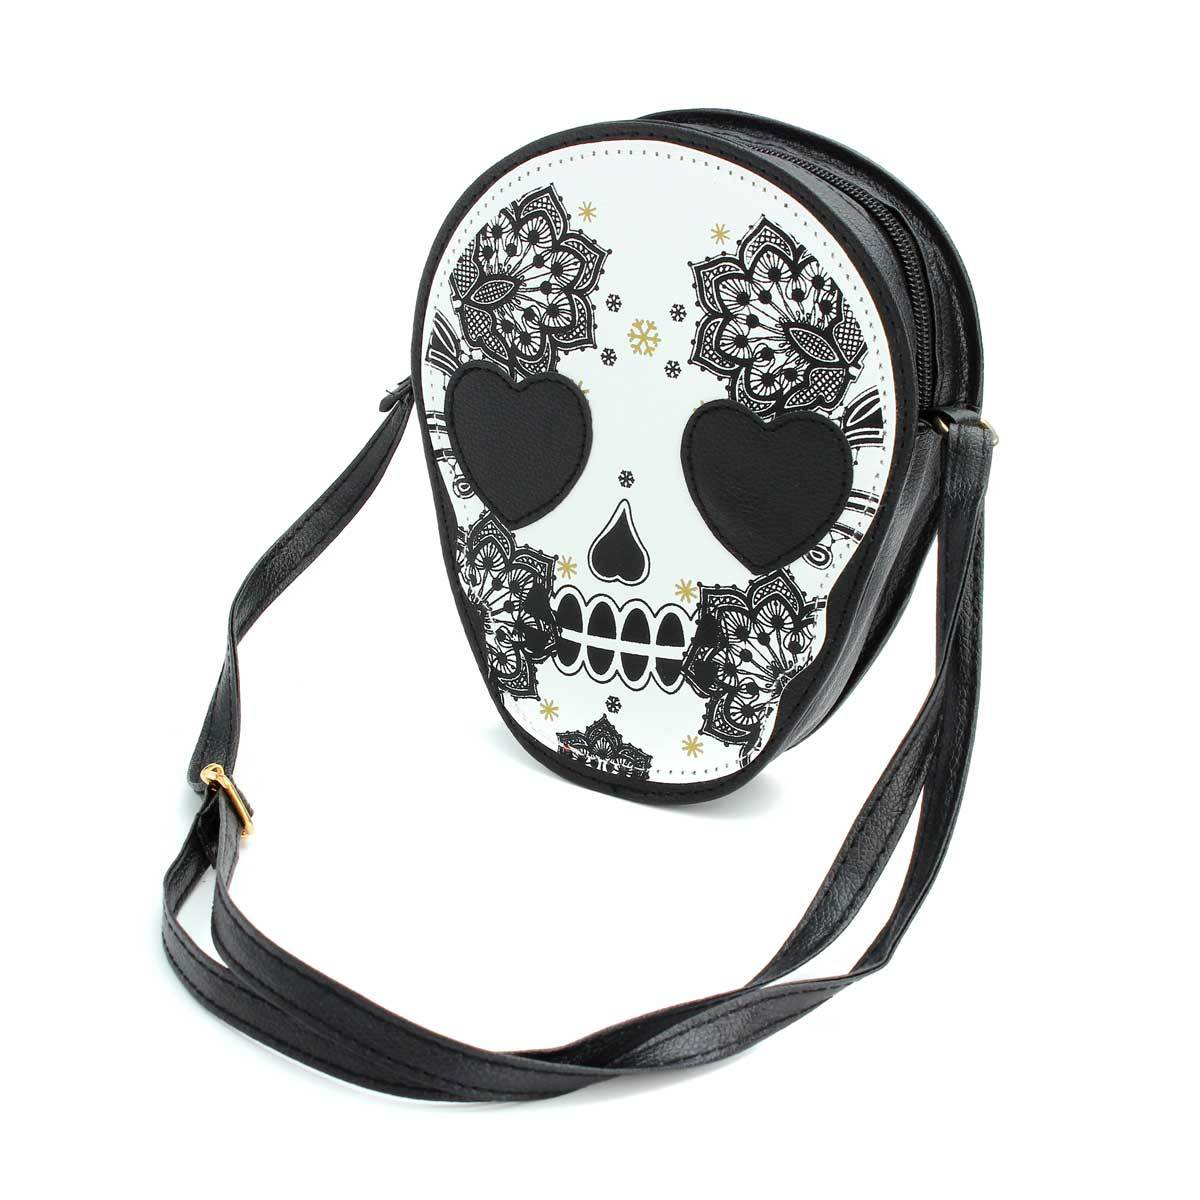 Bags Women Skull Head Shoulder Crossbody Small Personalized Messenger Bag Handba